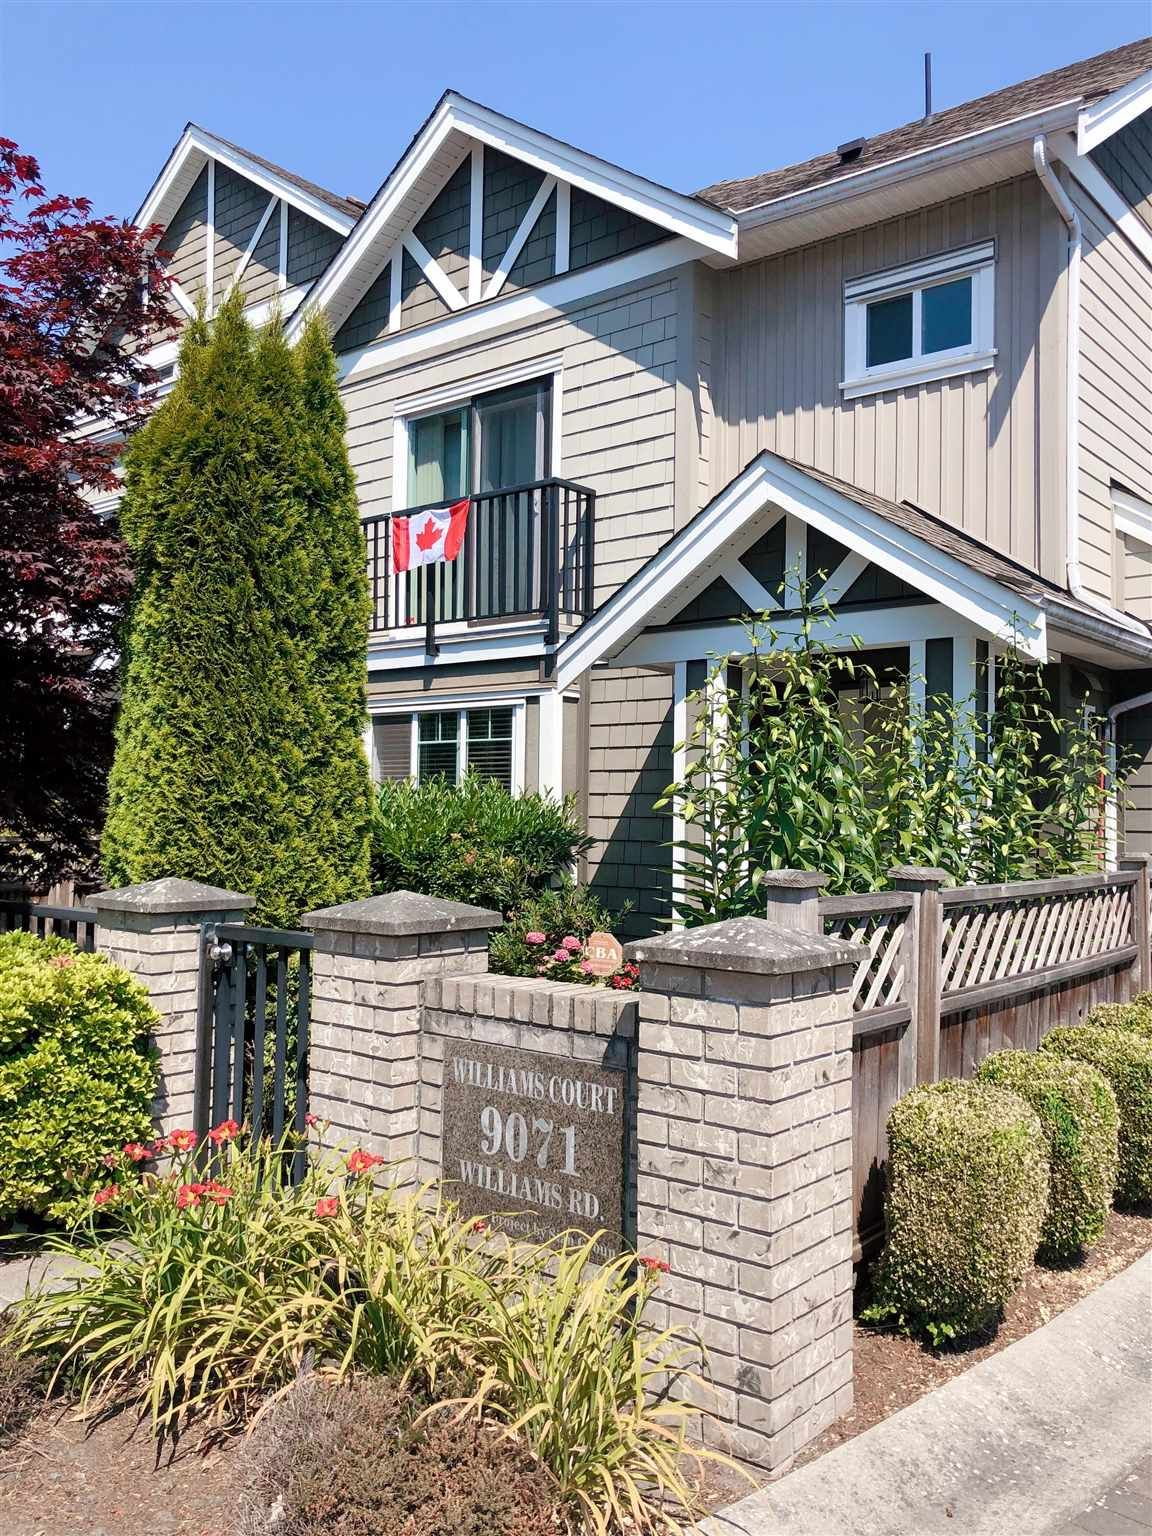 """Main Photo: 9 9071 WILLIAMS Road in Richmond: Saunders Townhouse for sale in """"SAUNDERS"""" : MLS®# R2602418"""